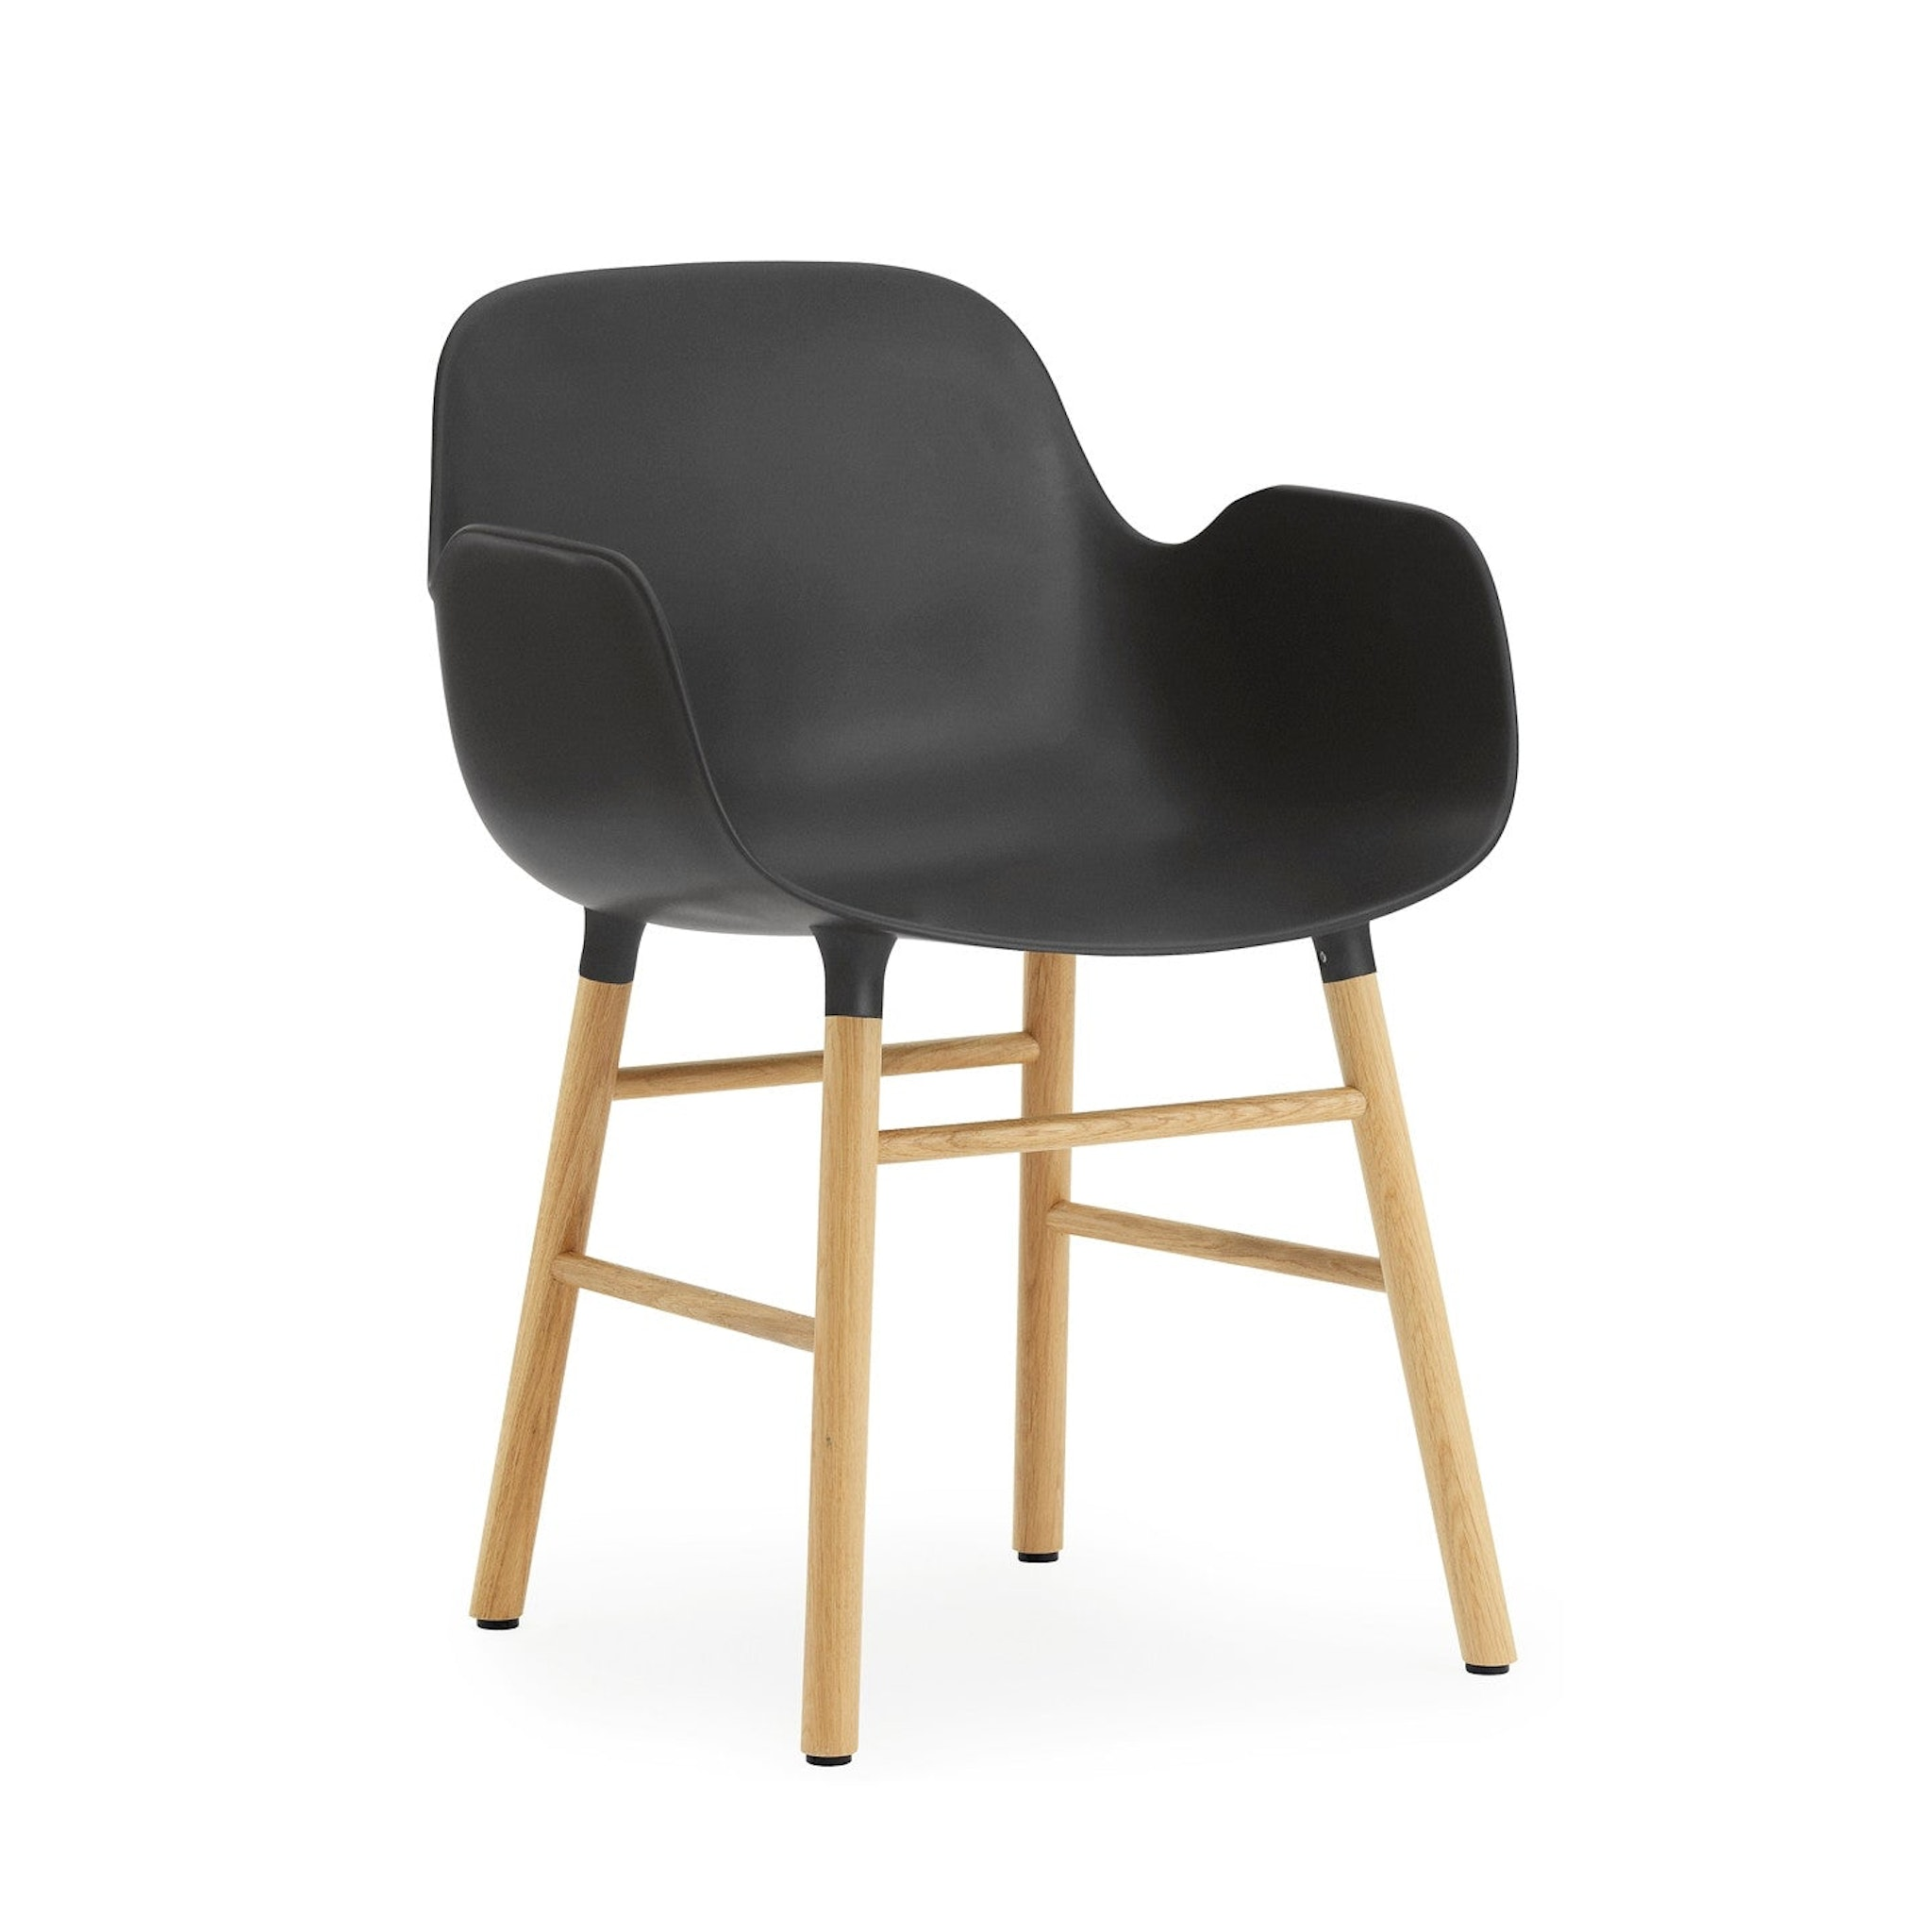 Form Armchair with Wooden Base by Normann Copenhagen